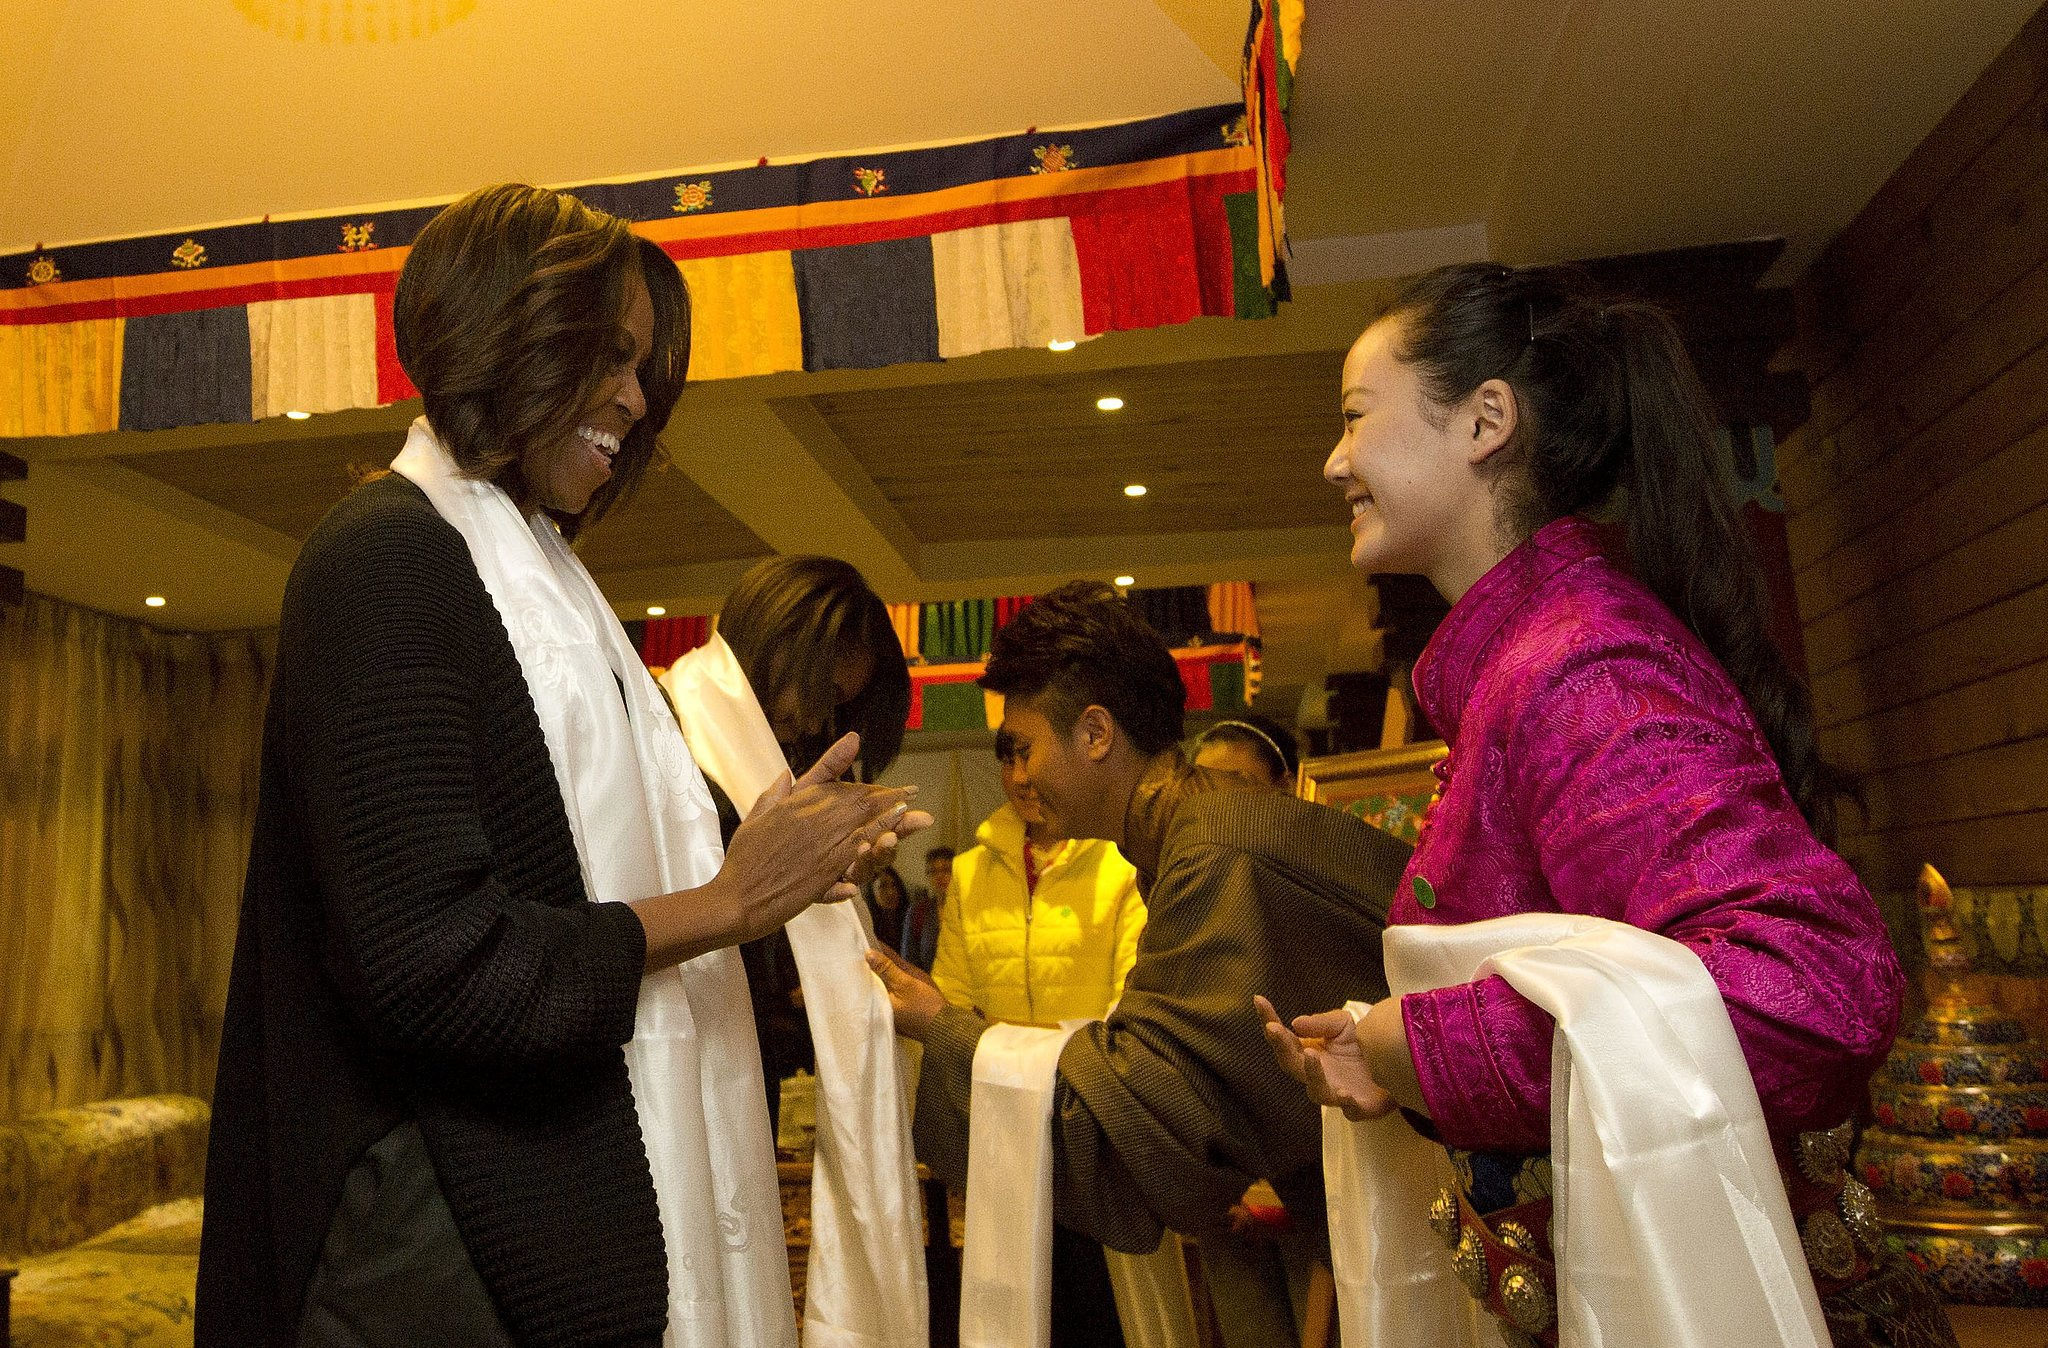 The first lady received a Tibetan scarf when she and her daughters were greeted at the restaurant.